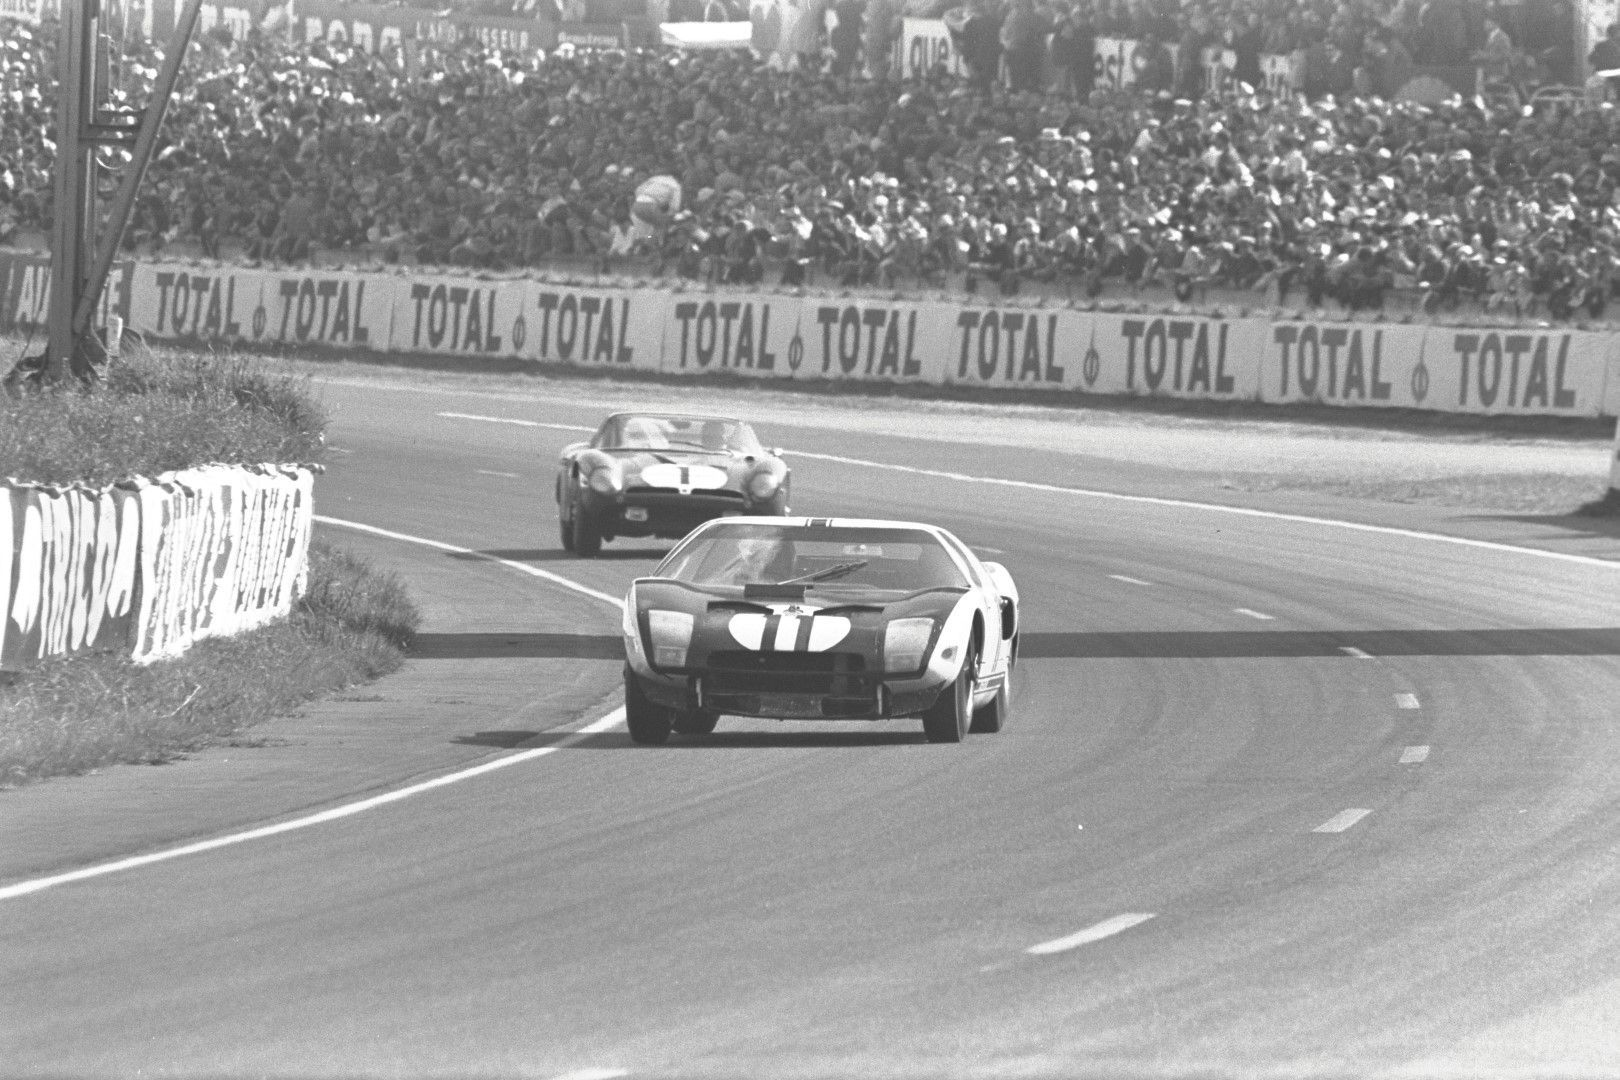 Ford Gt40 In Action At Le Mans 19 Ford Gt Gt40 Le Mans